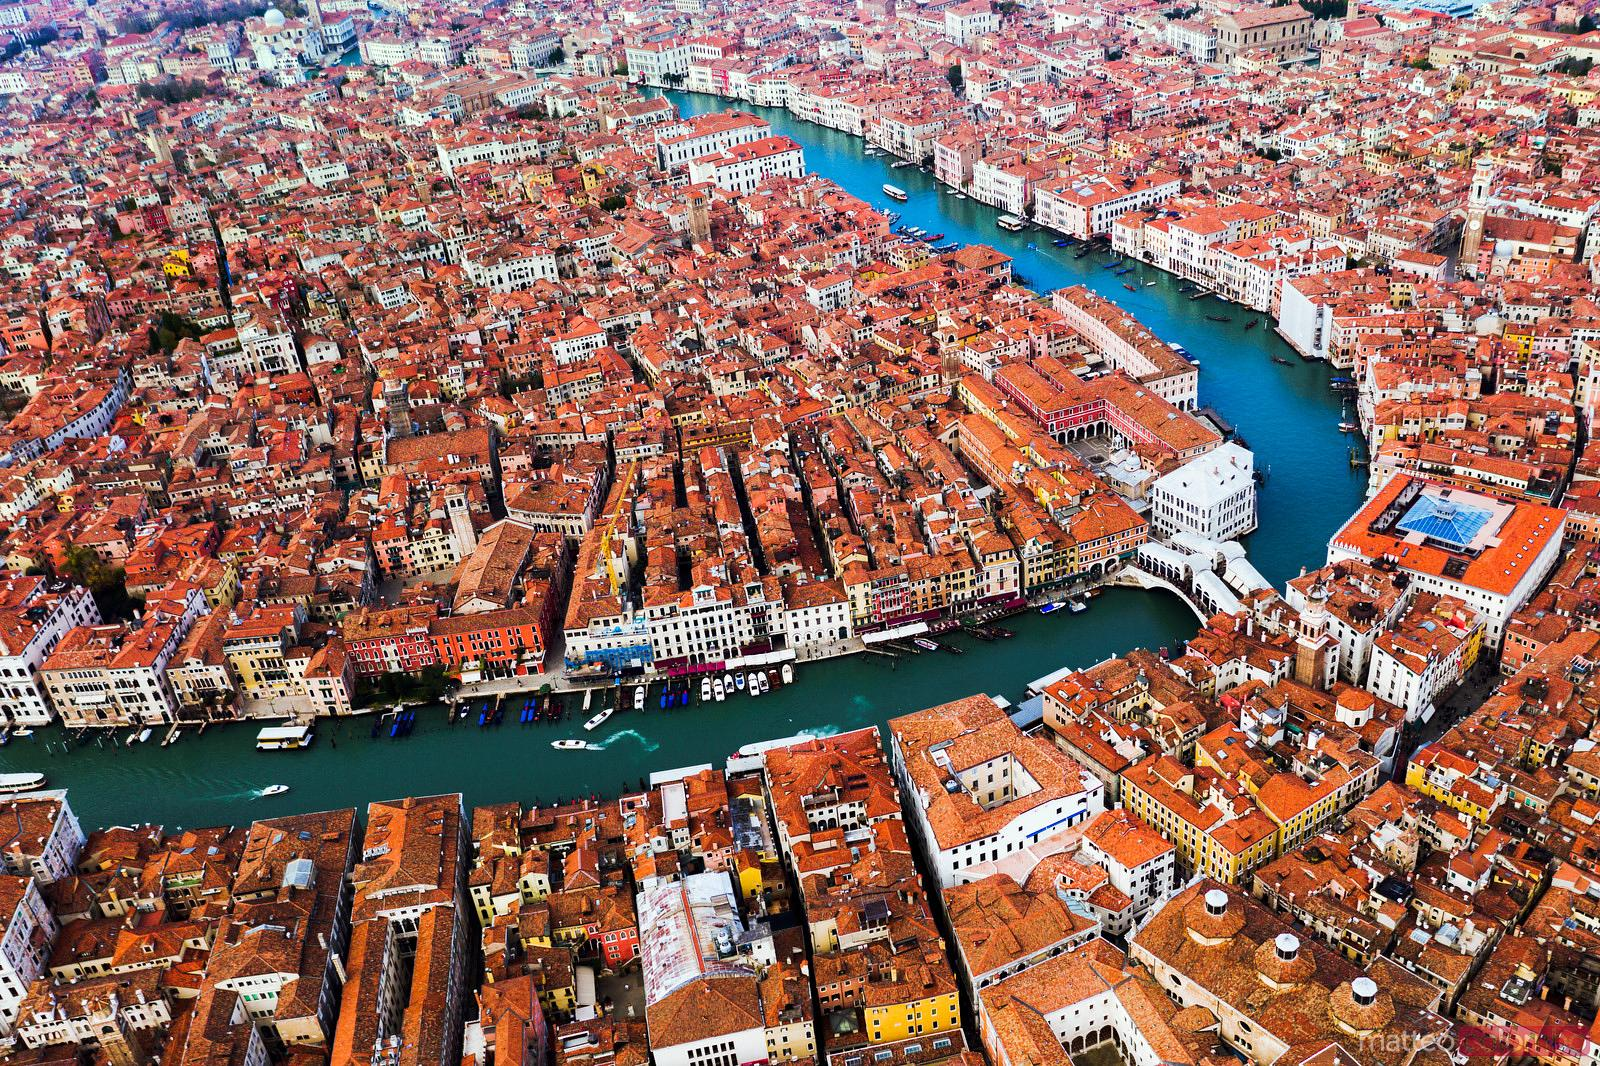 Aerial view of Rialto, Grand Canal, Venice